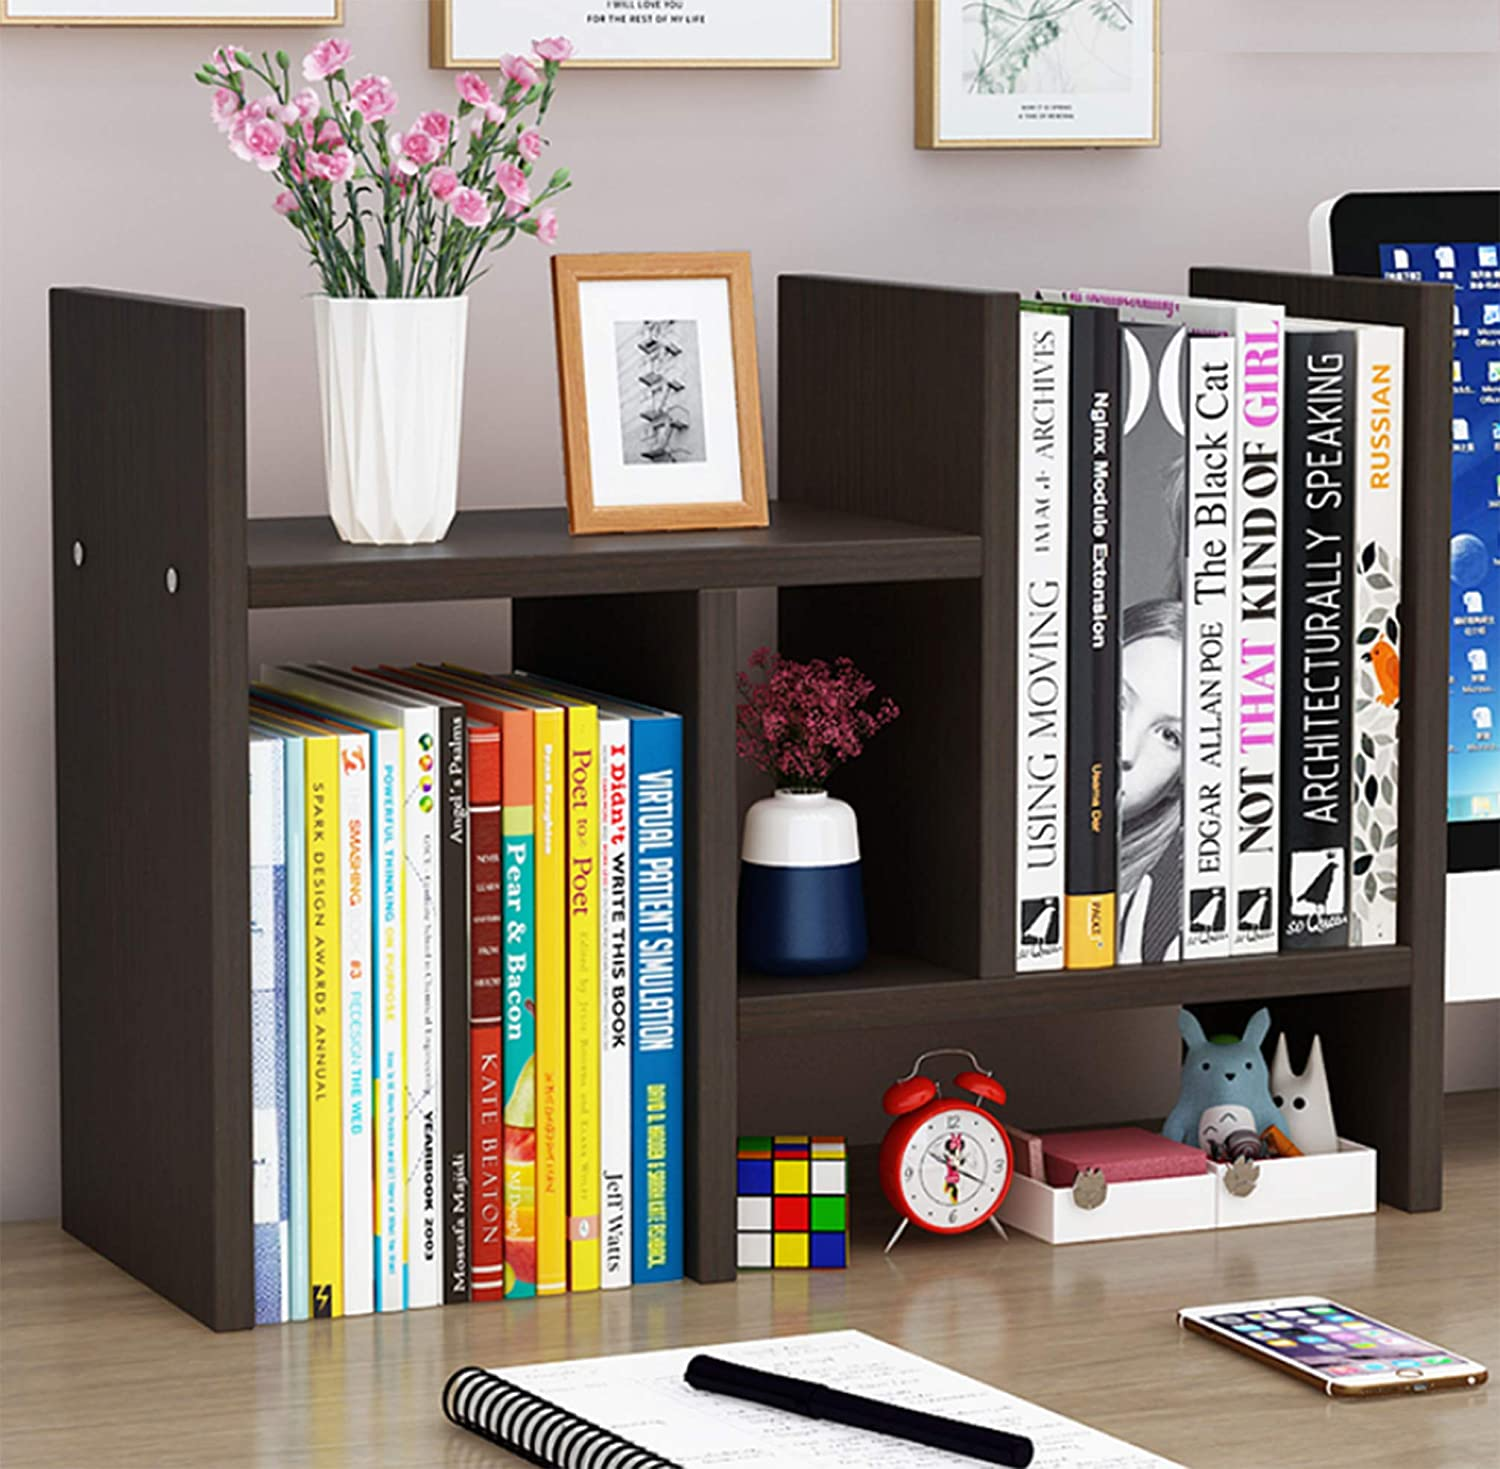 Office Desktop Bookshelf Adjustable Wood Display Shelf Desktop Organizer Office Storage Rack Countertop Bookcase Office Supplies Desk Organizer Accessories (Color: Espresso)